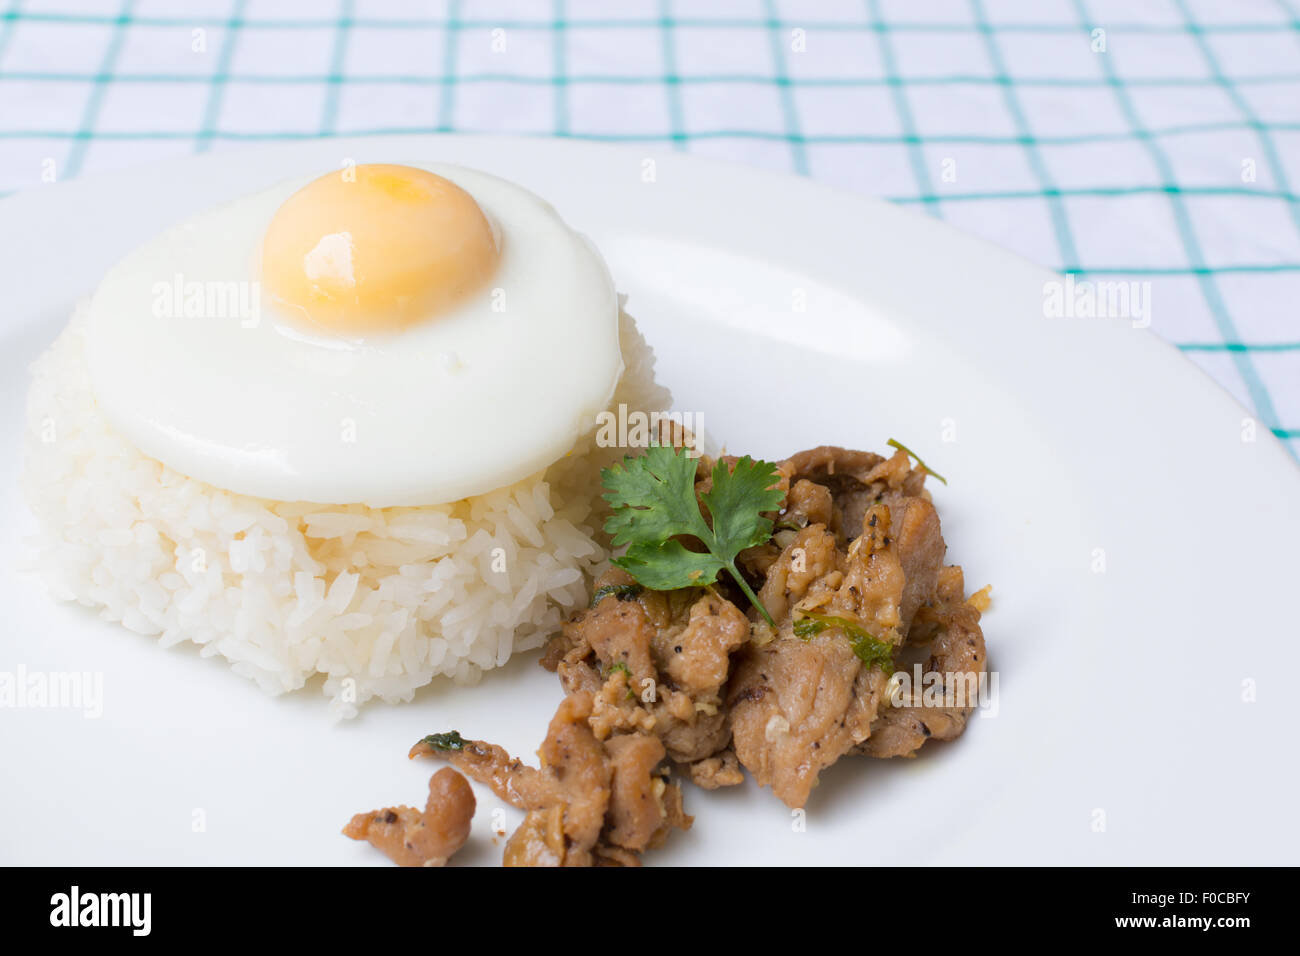 Pork fried with garlic and fried egg on rice - Stock Image